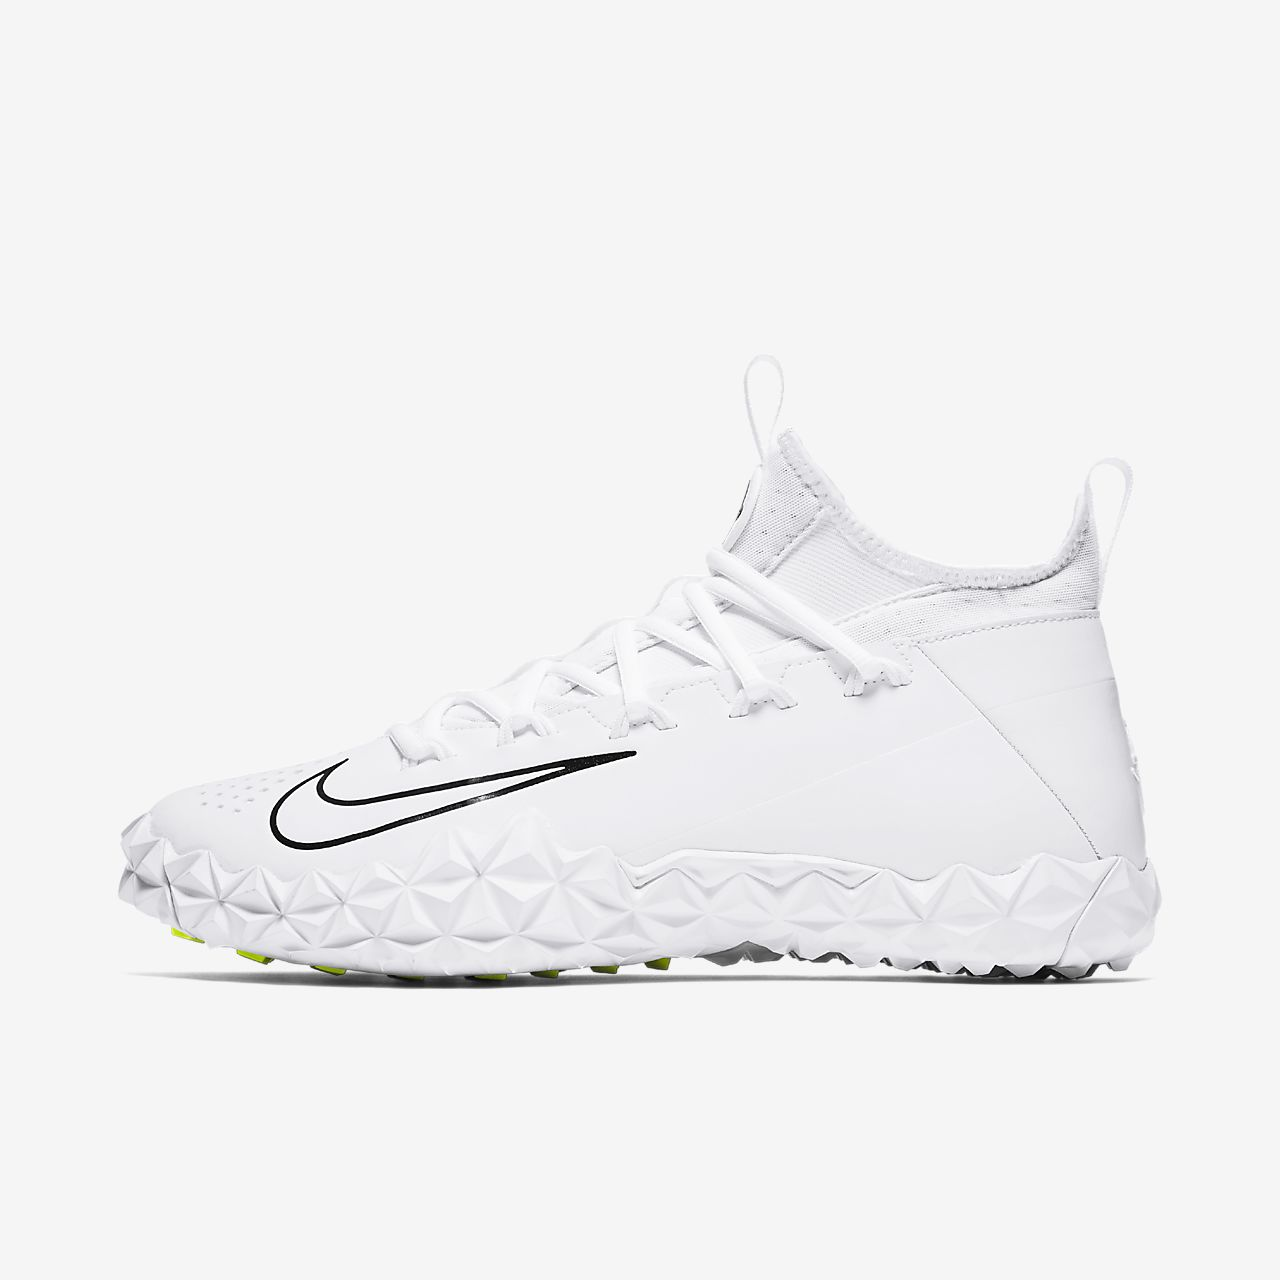 ... Nike Alpha Huarache 6 Elite Turf LAX Lacrosse Cleat